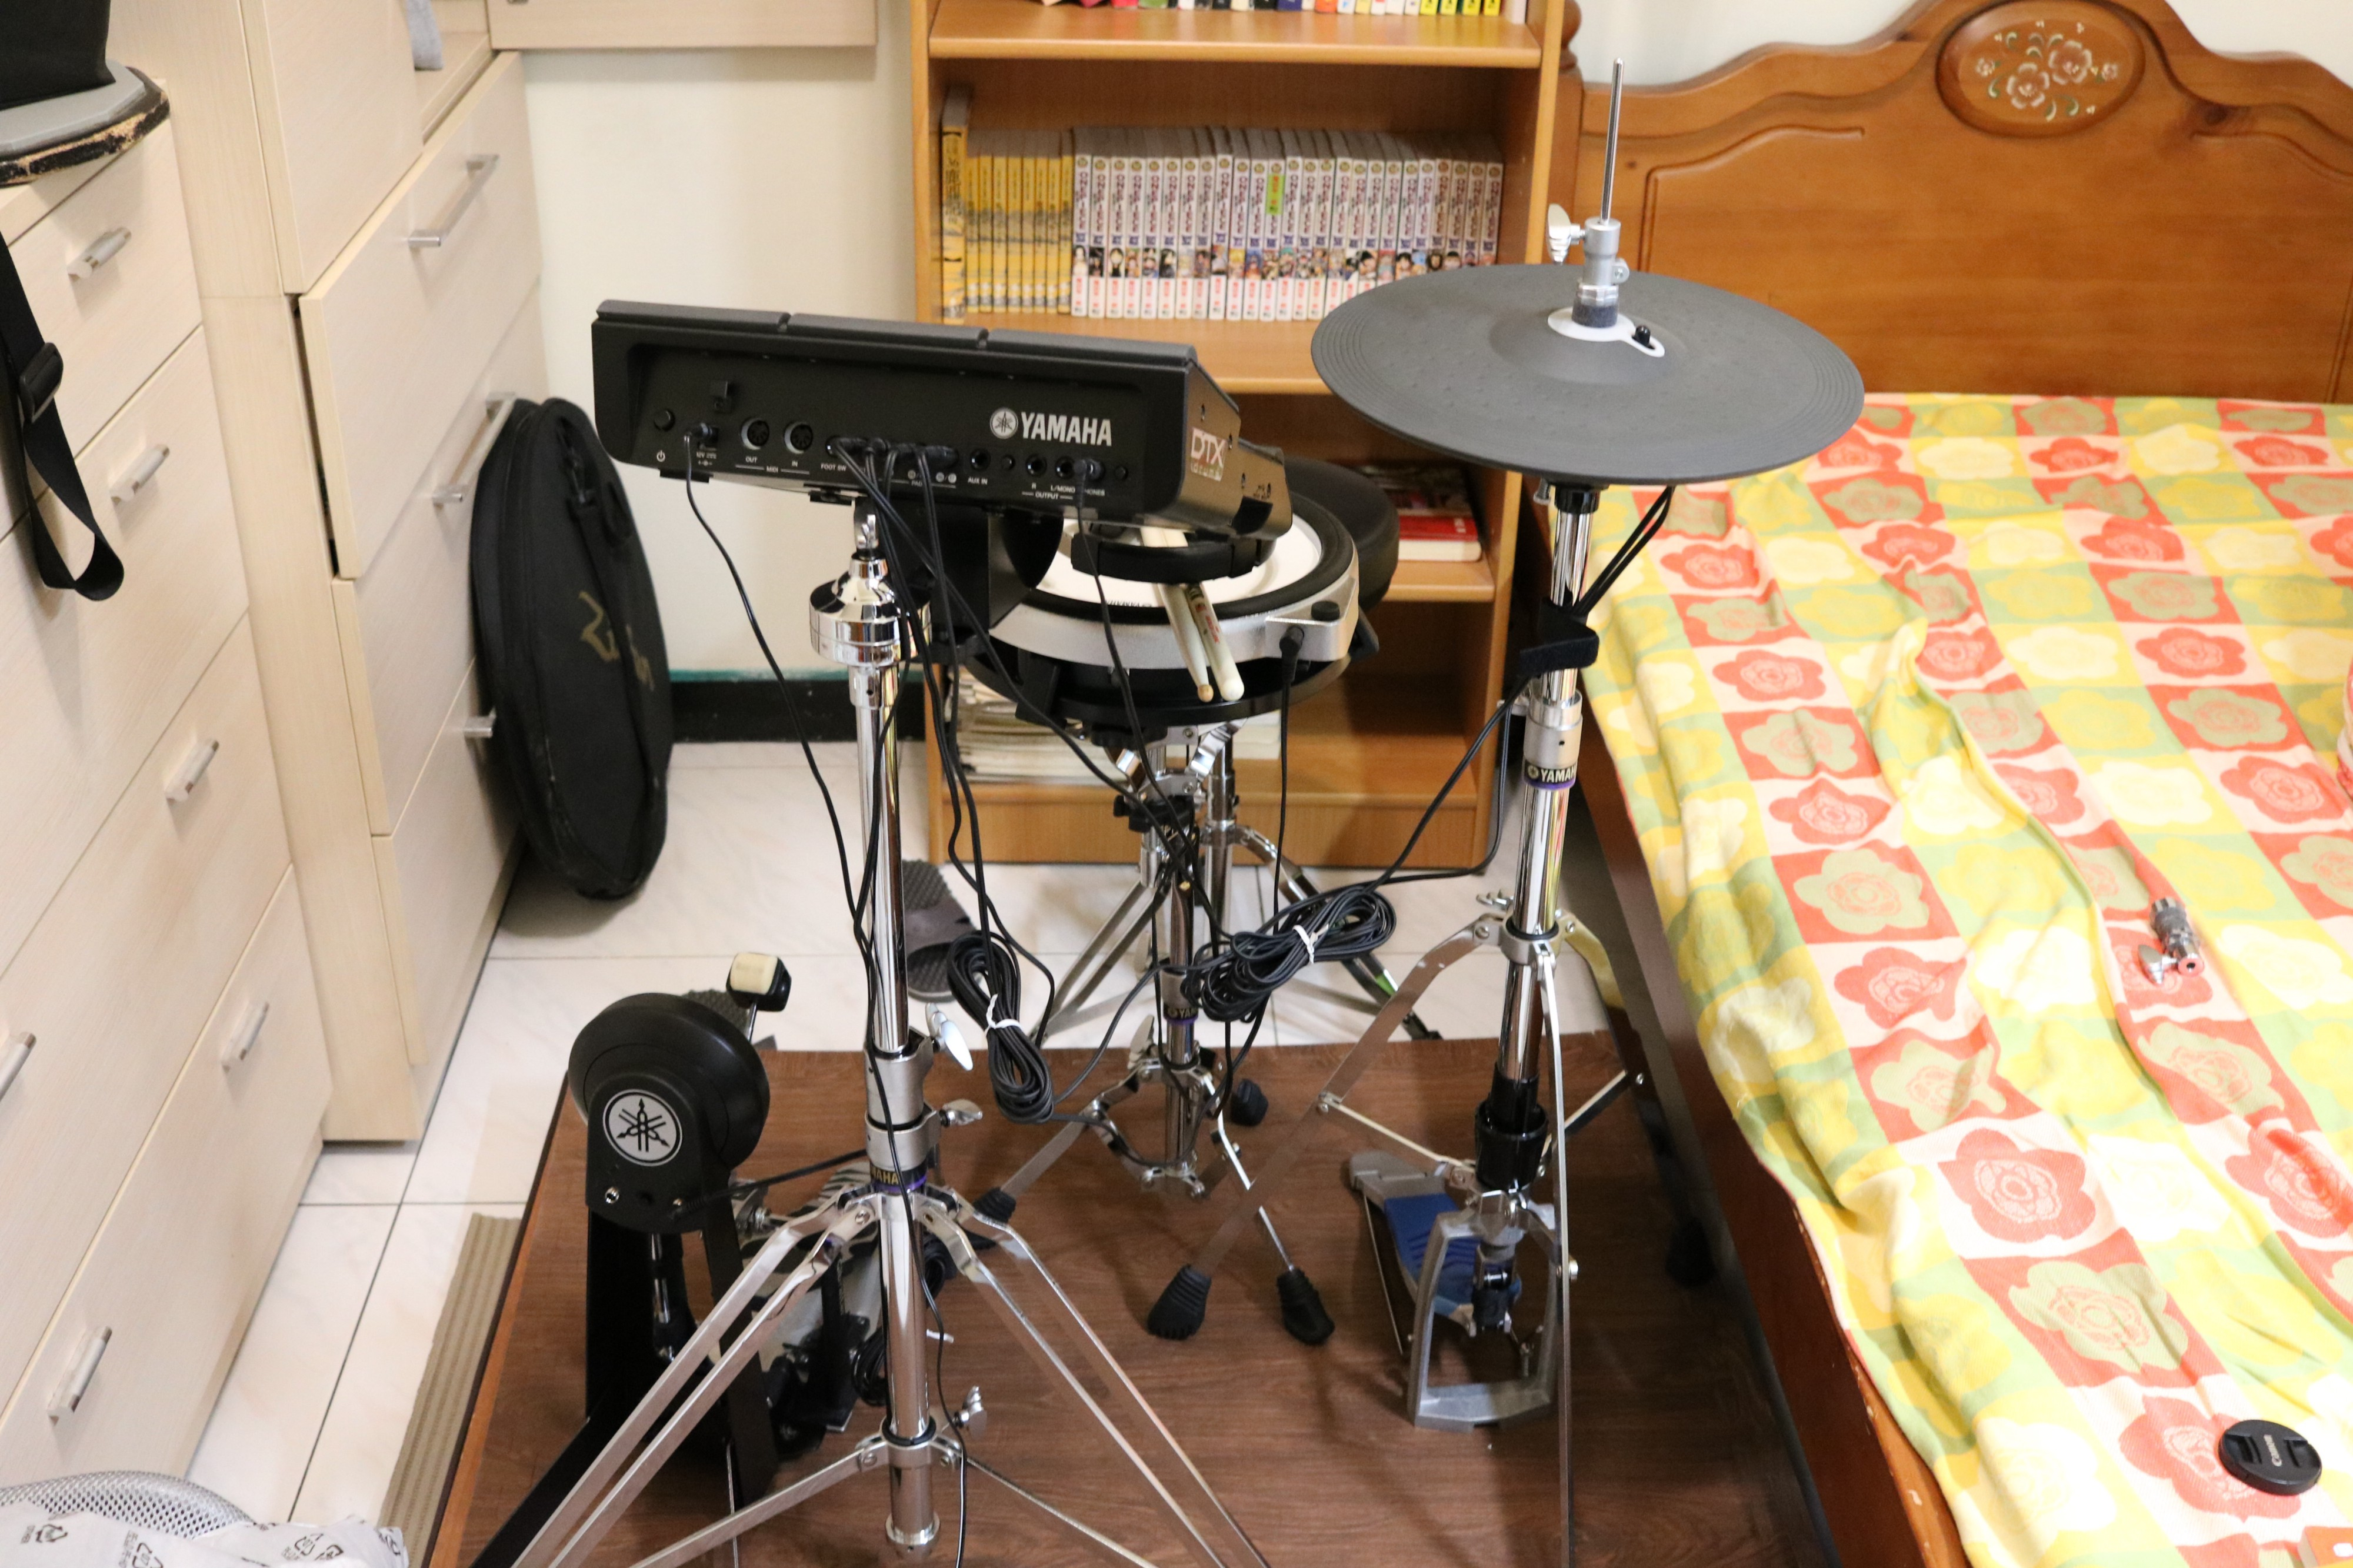 My Yamaha Dtx Multi 12 Drum Kit Robert Vandenberg Huang